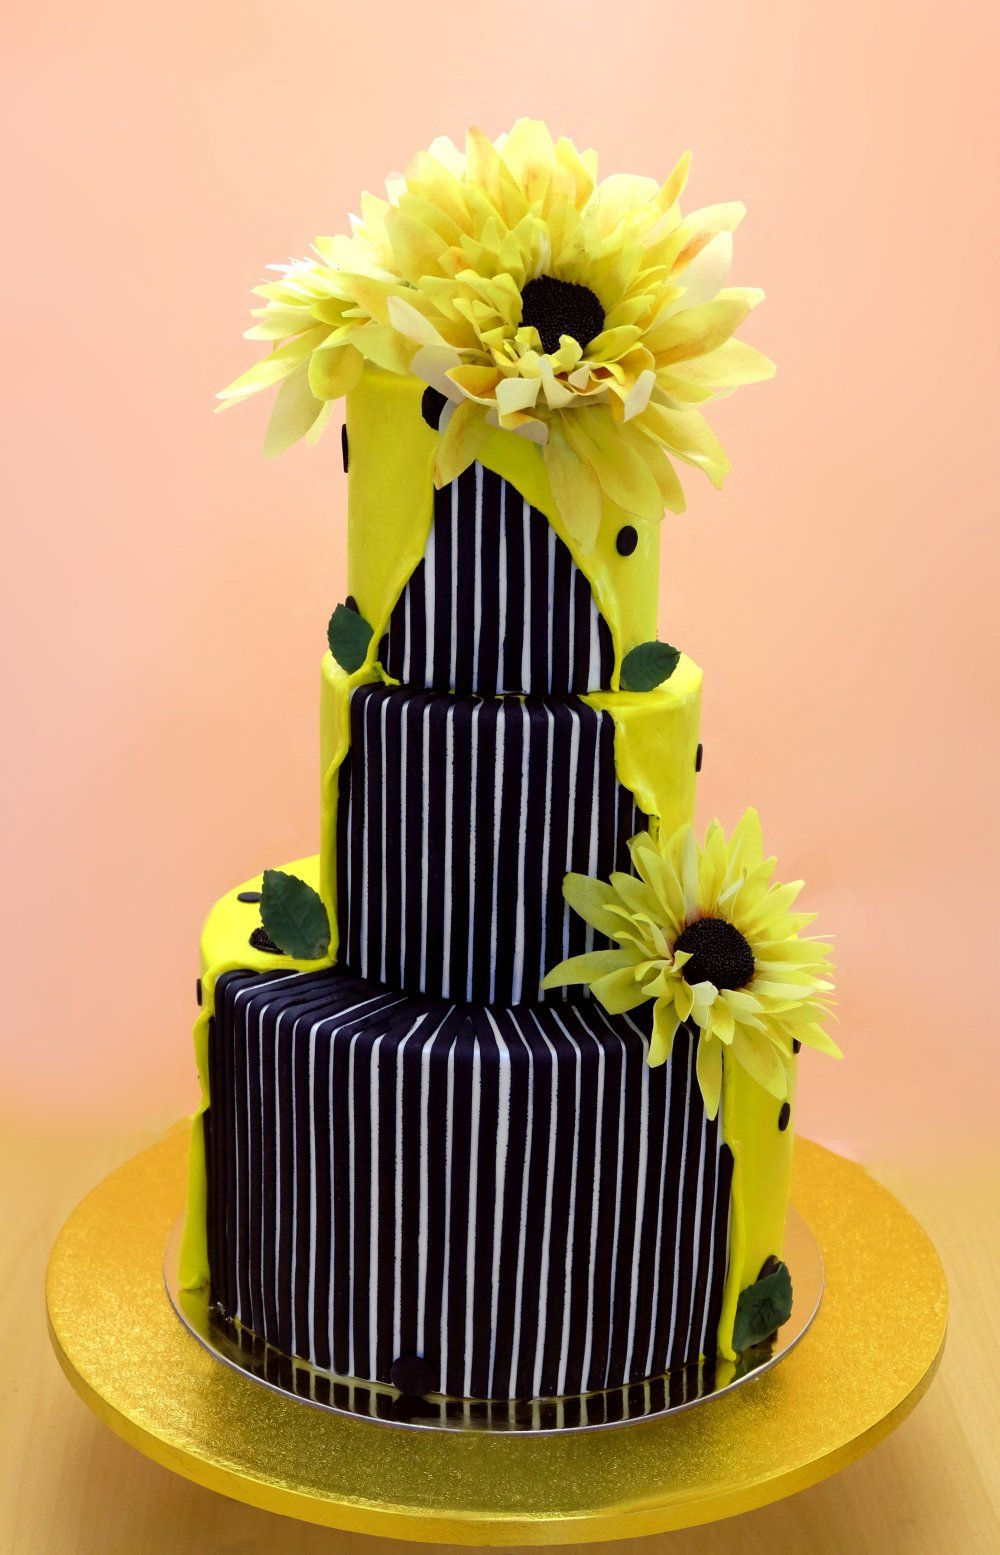 Wow 😲😲 | Cakes and Deserts | Pinterest | Cake, Wedding cake and ...